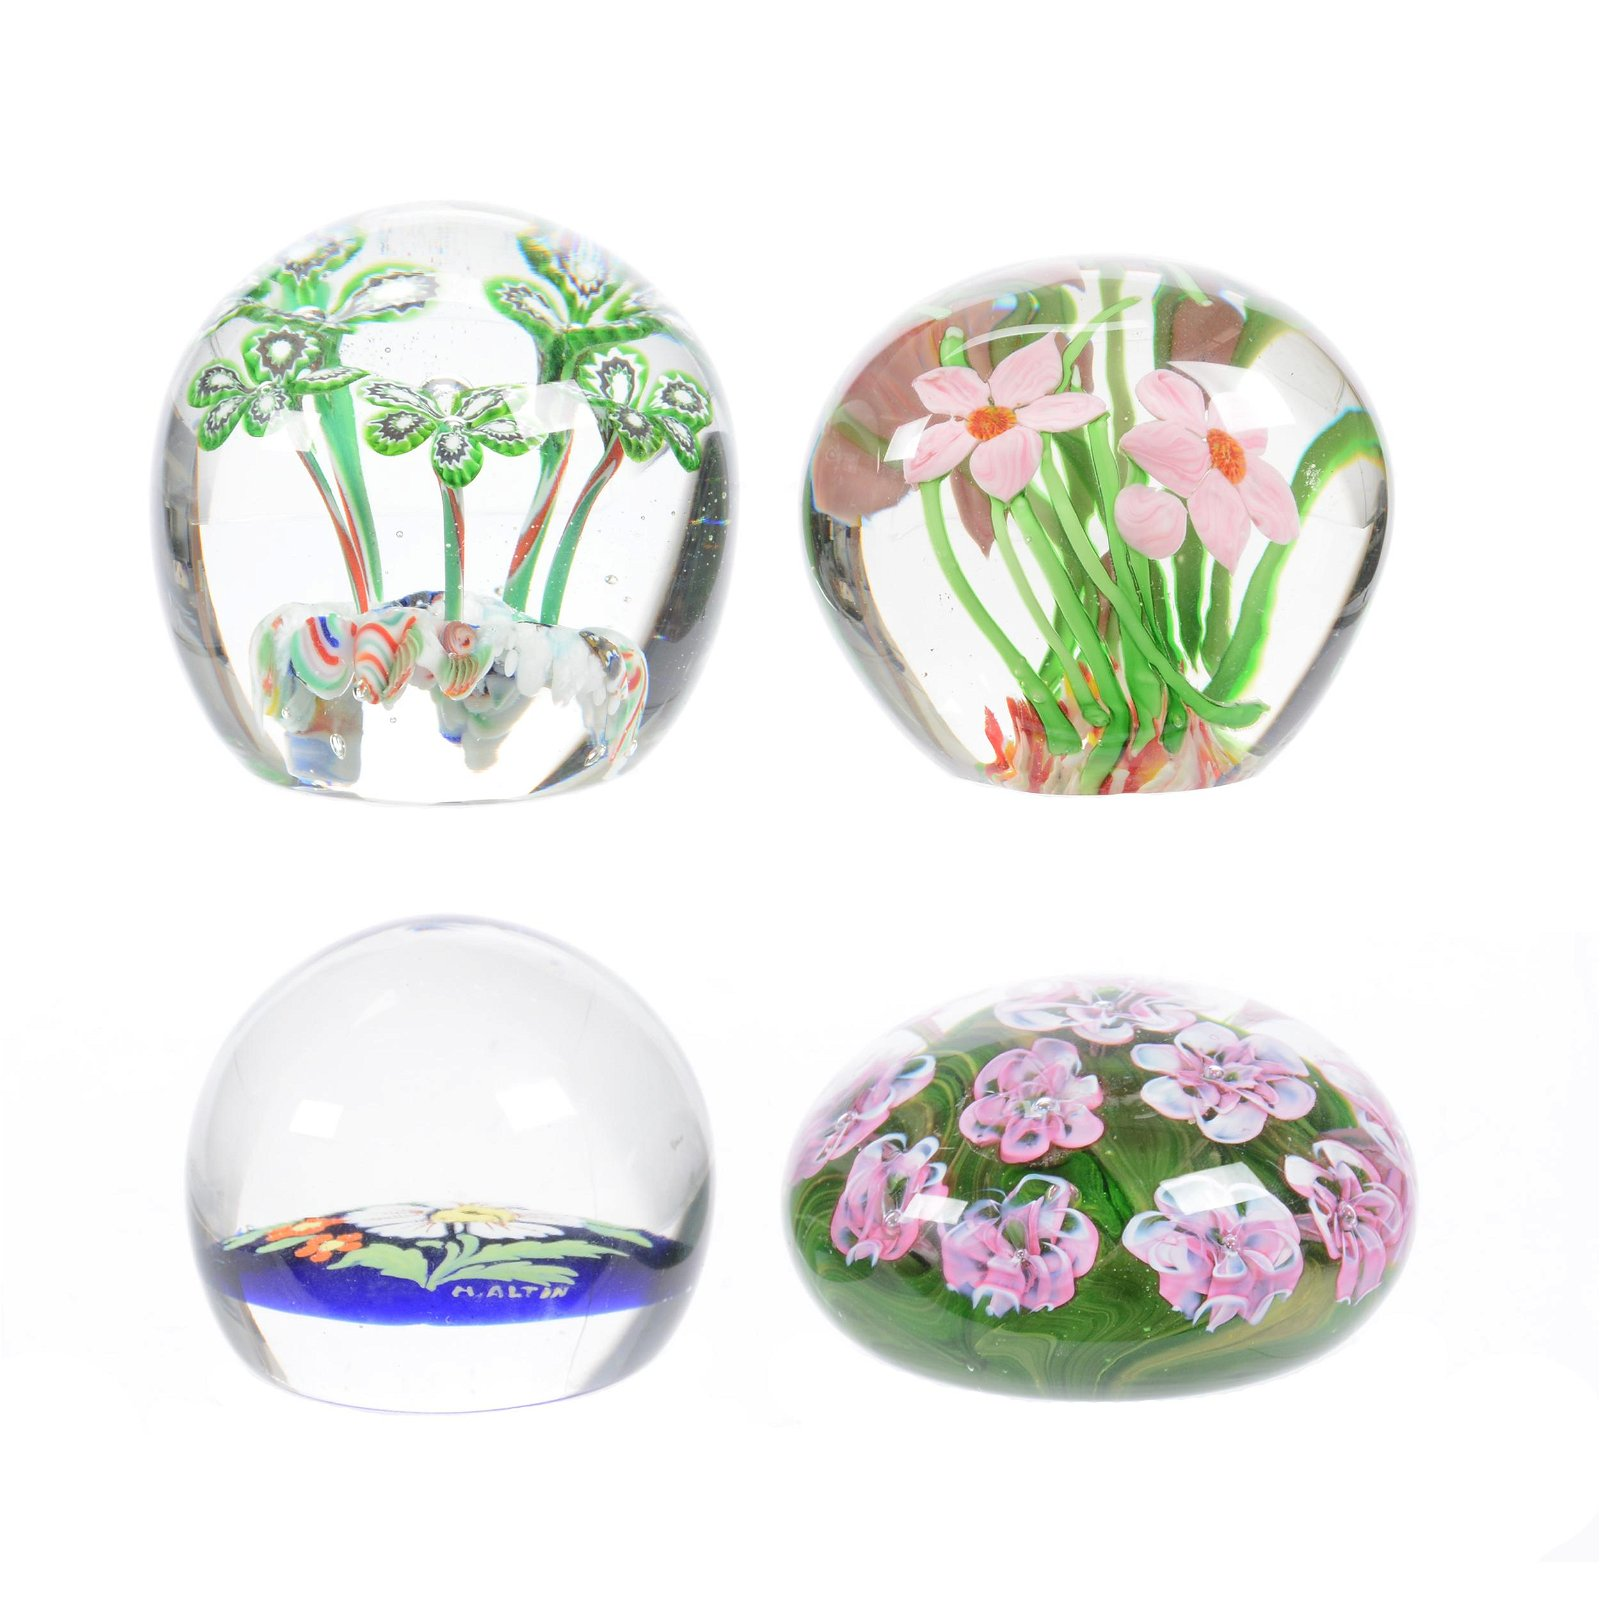 (4) Paperweights, All With Floral Design